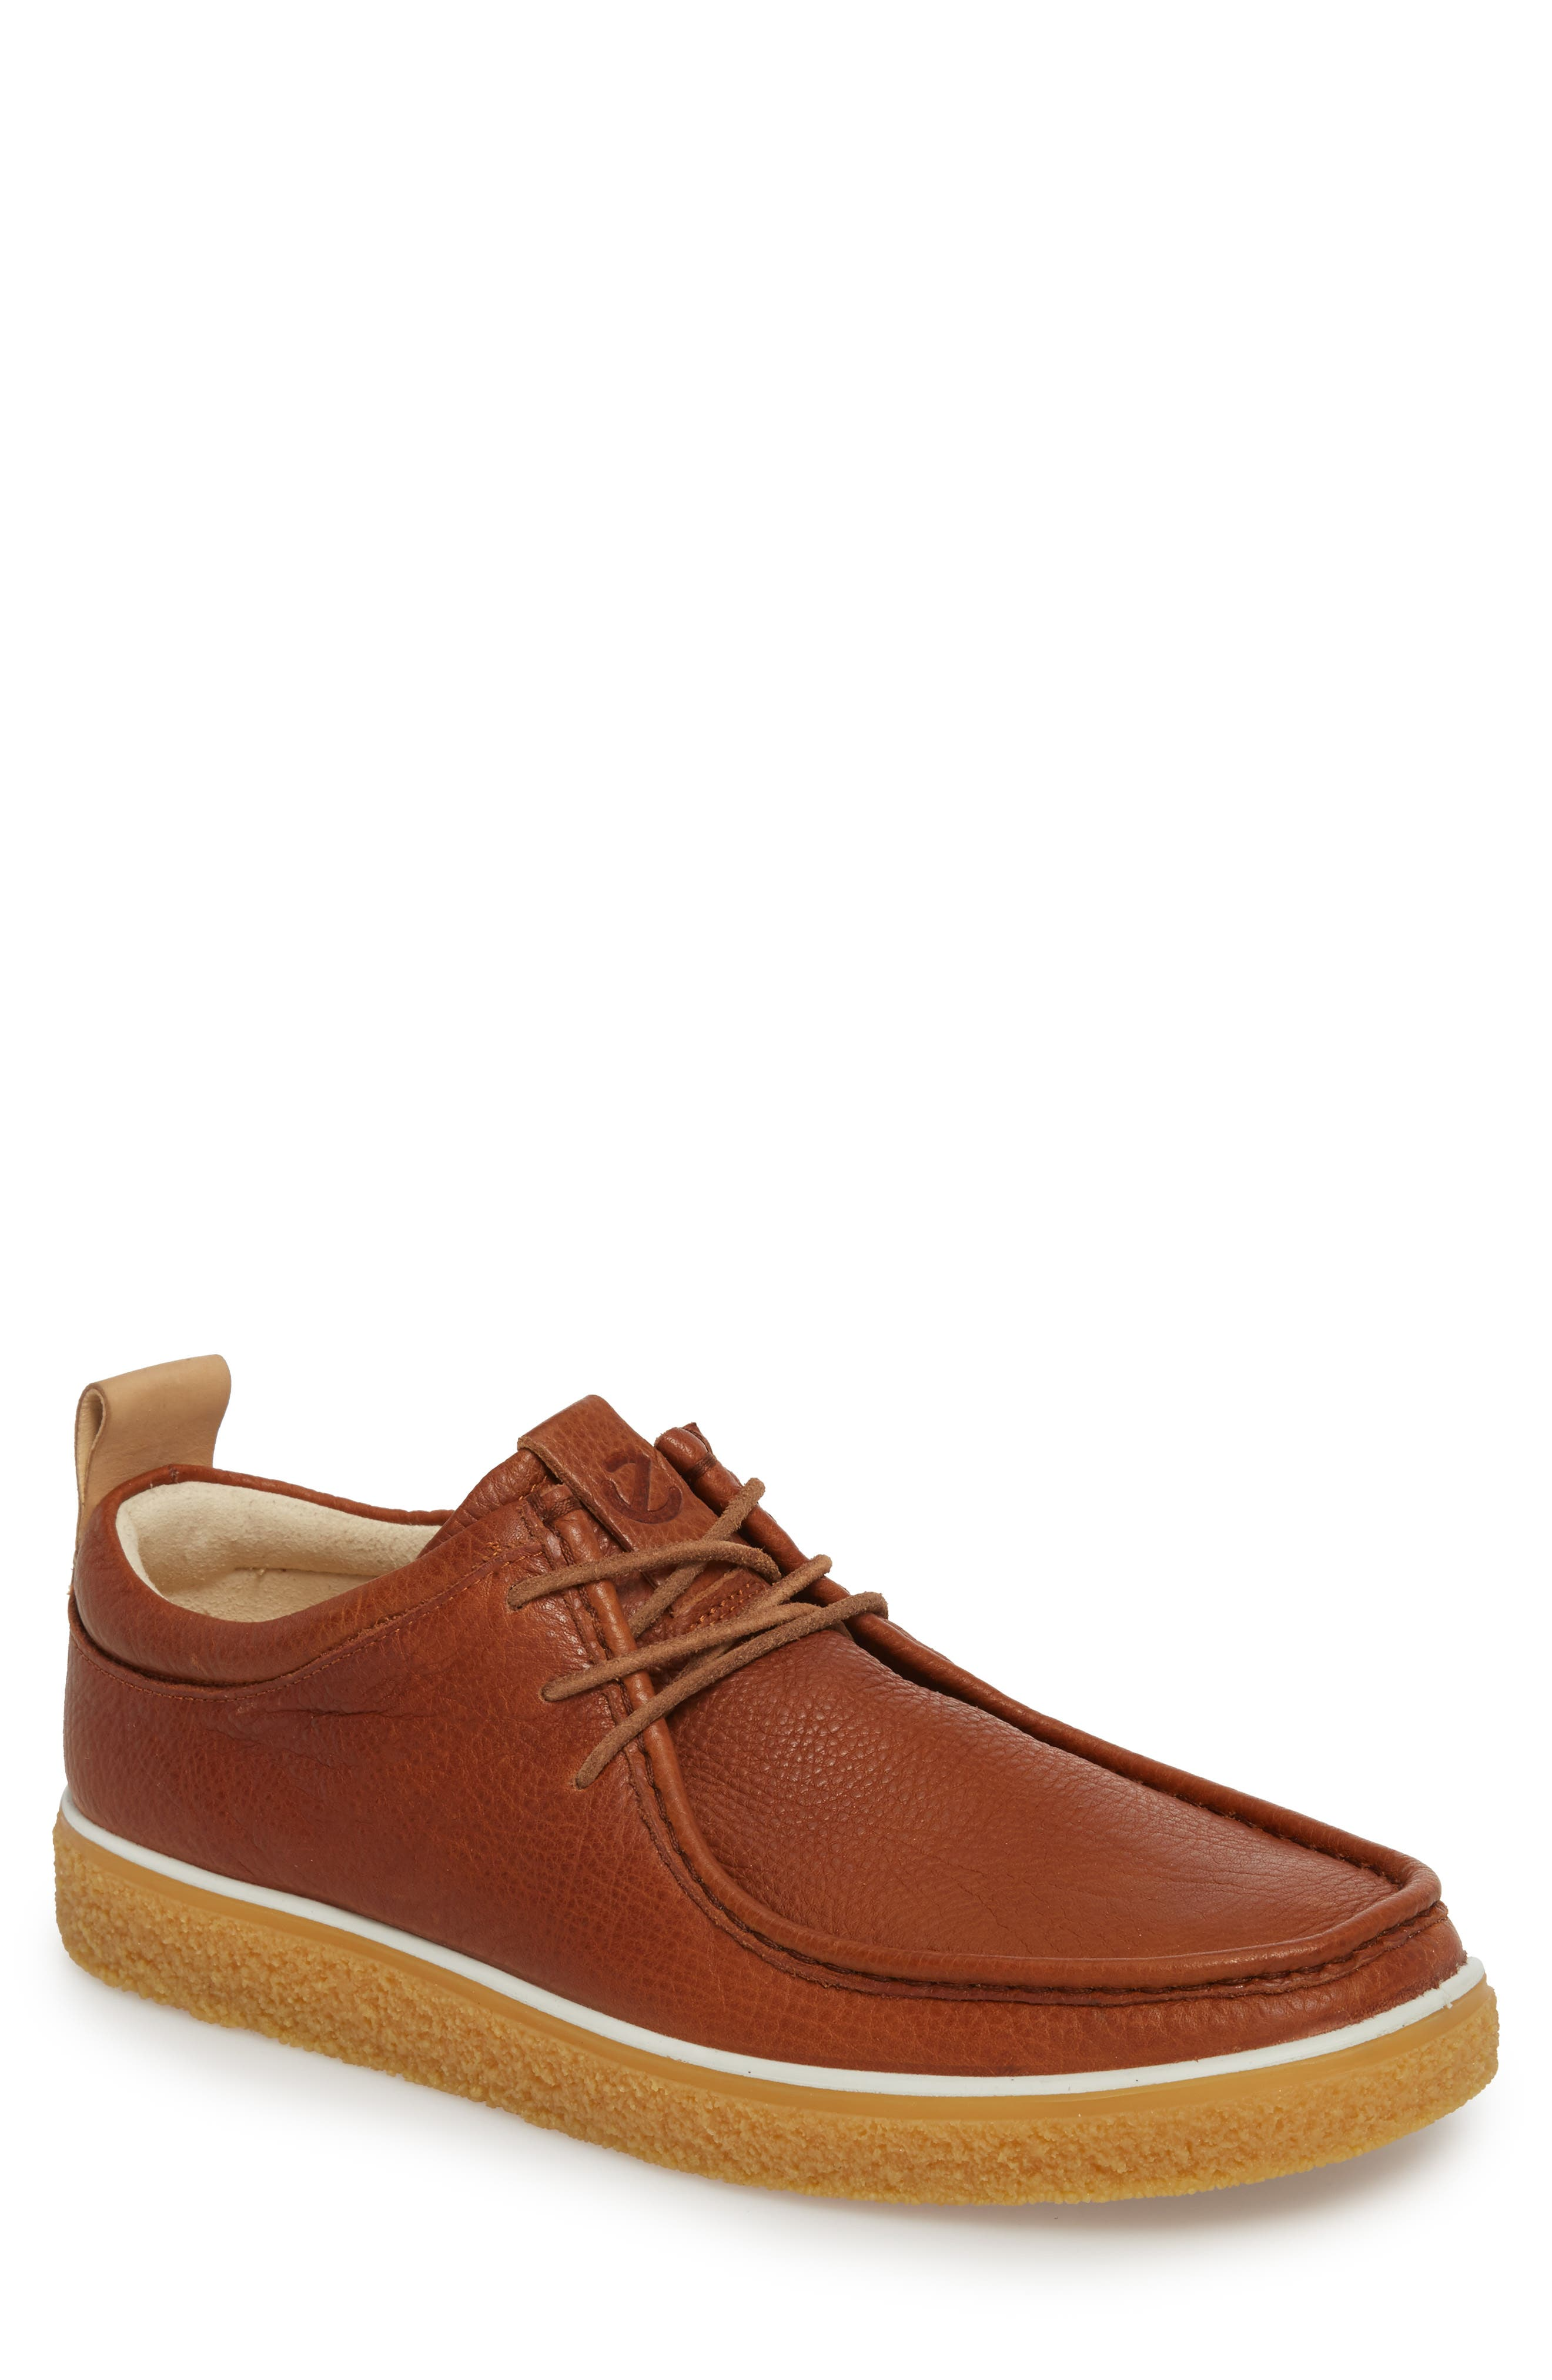 Crepetray Moc Toe Lace-Up,                             Main thumbnail 1, color,                             Lion Leather